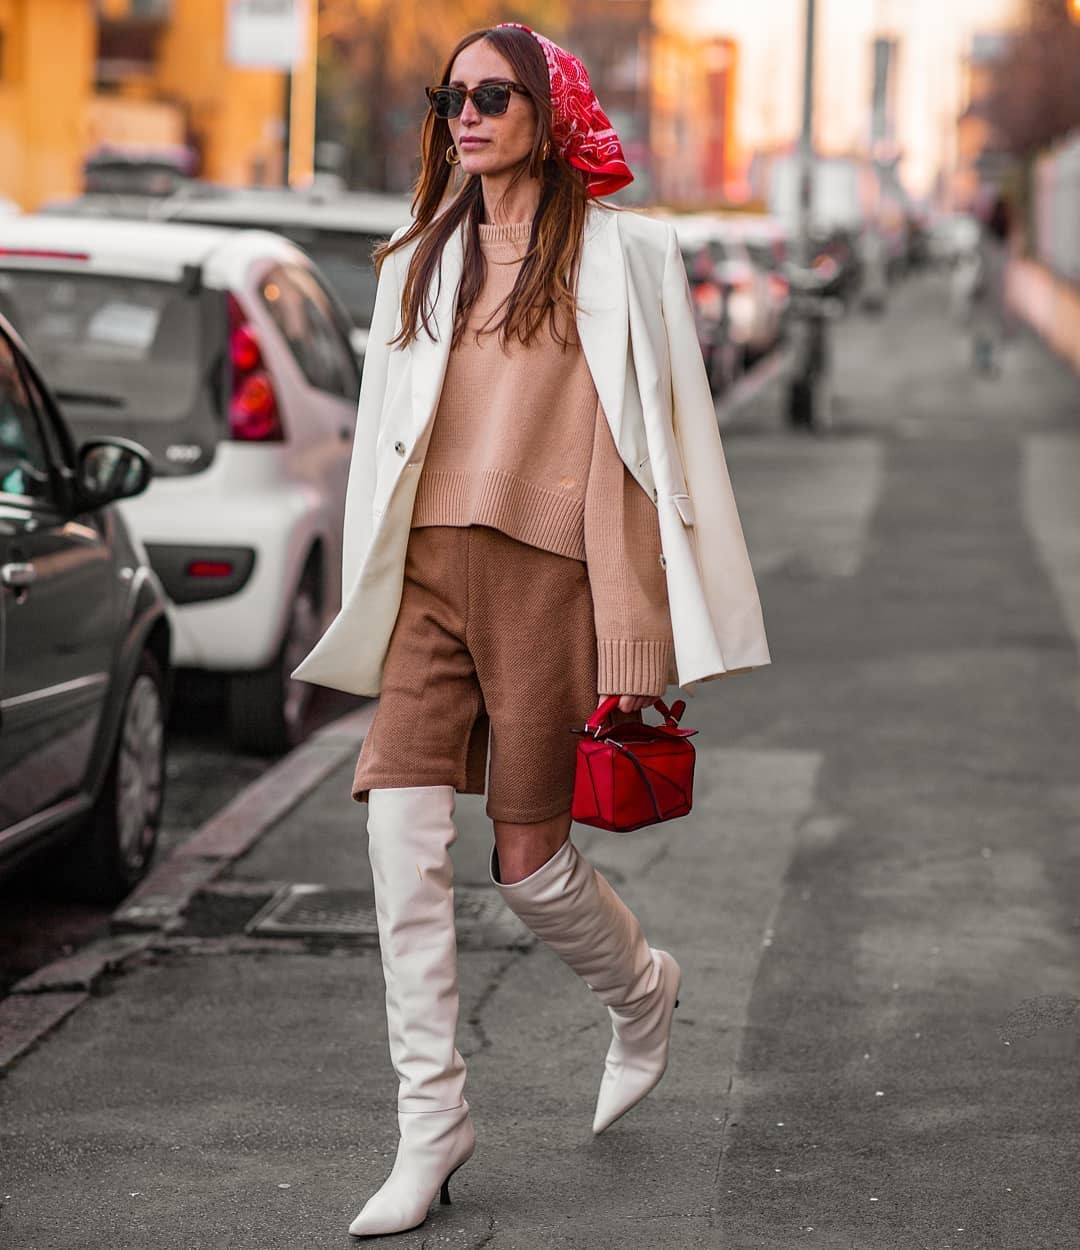 Fustany-fashion-style-ideas-how-to-wear-knee-high-boots-with-anything-5.jpg